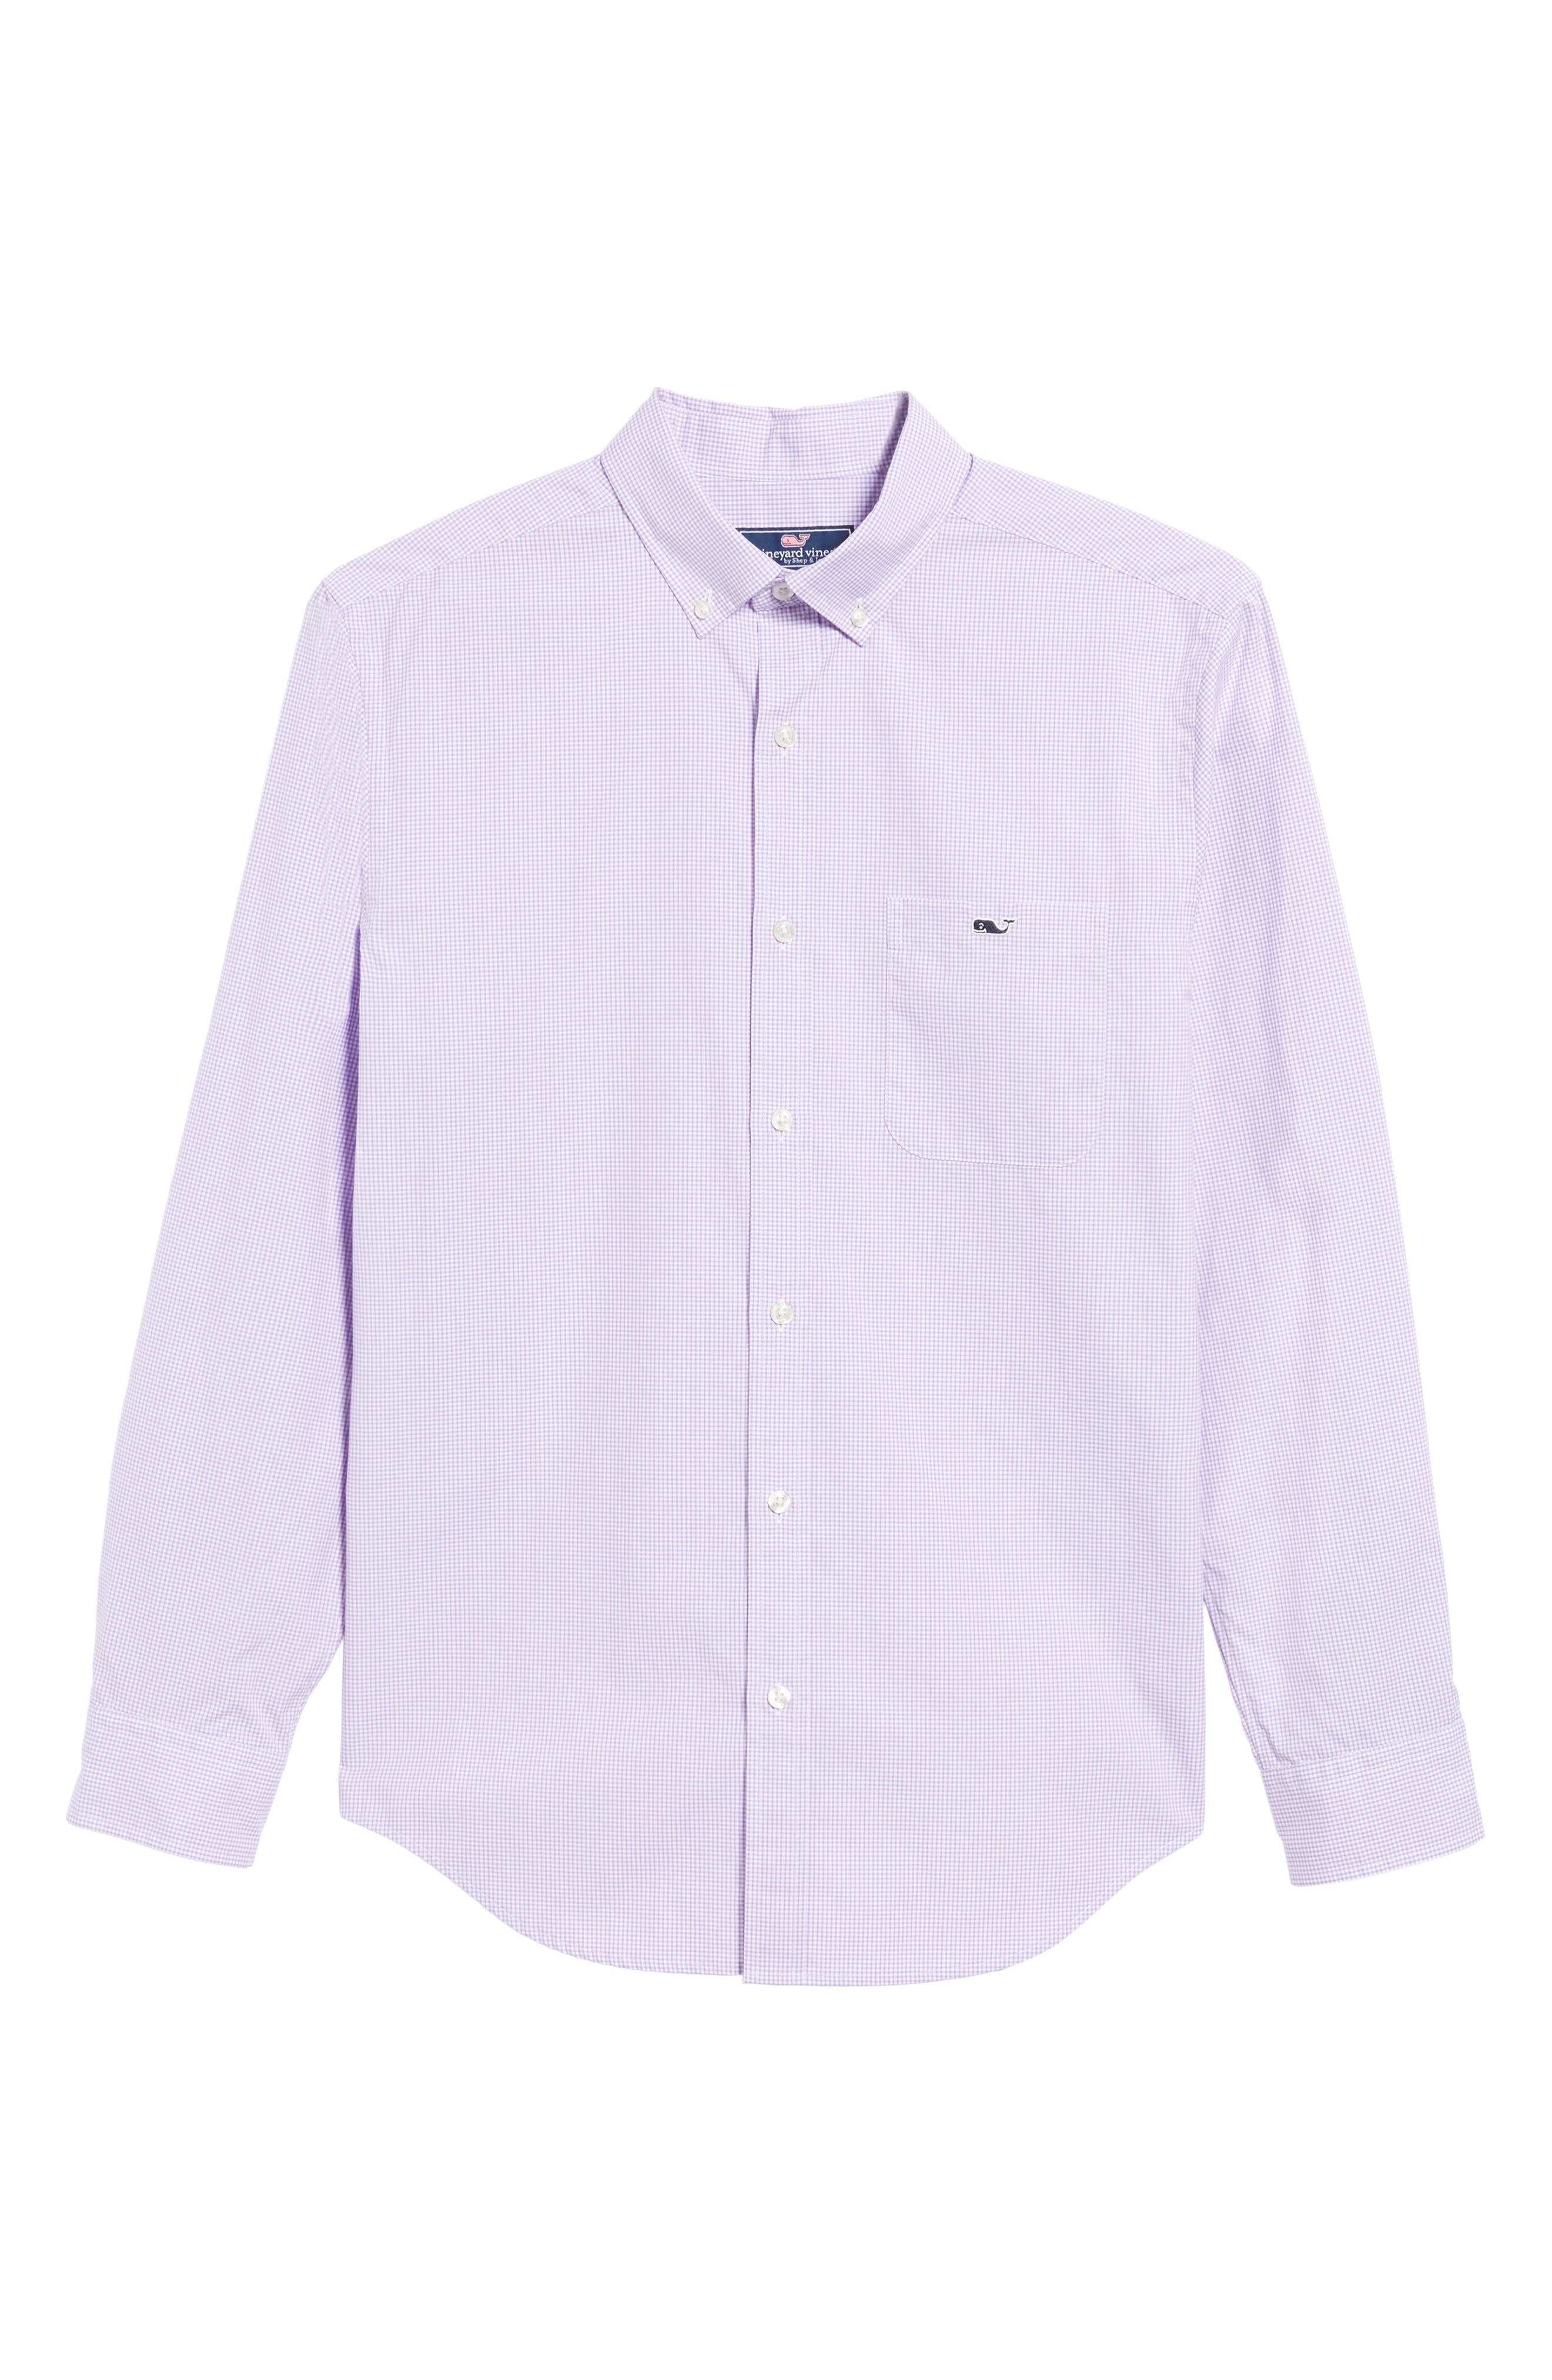 Seaboard Classic Fit Gingham Sport Shirt,                             Alternate thumbnail 6, color,